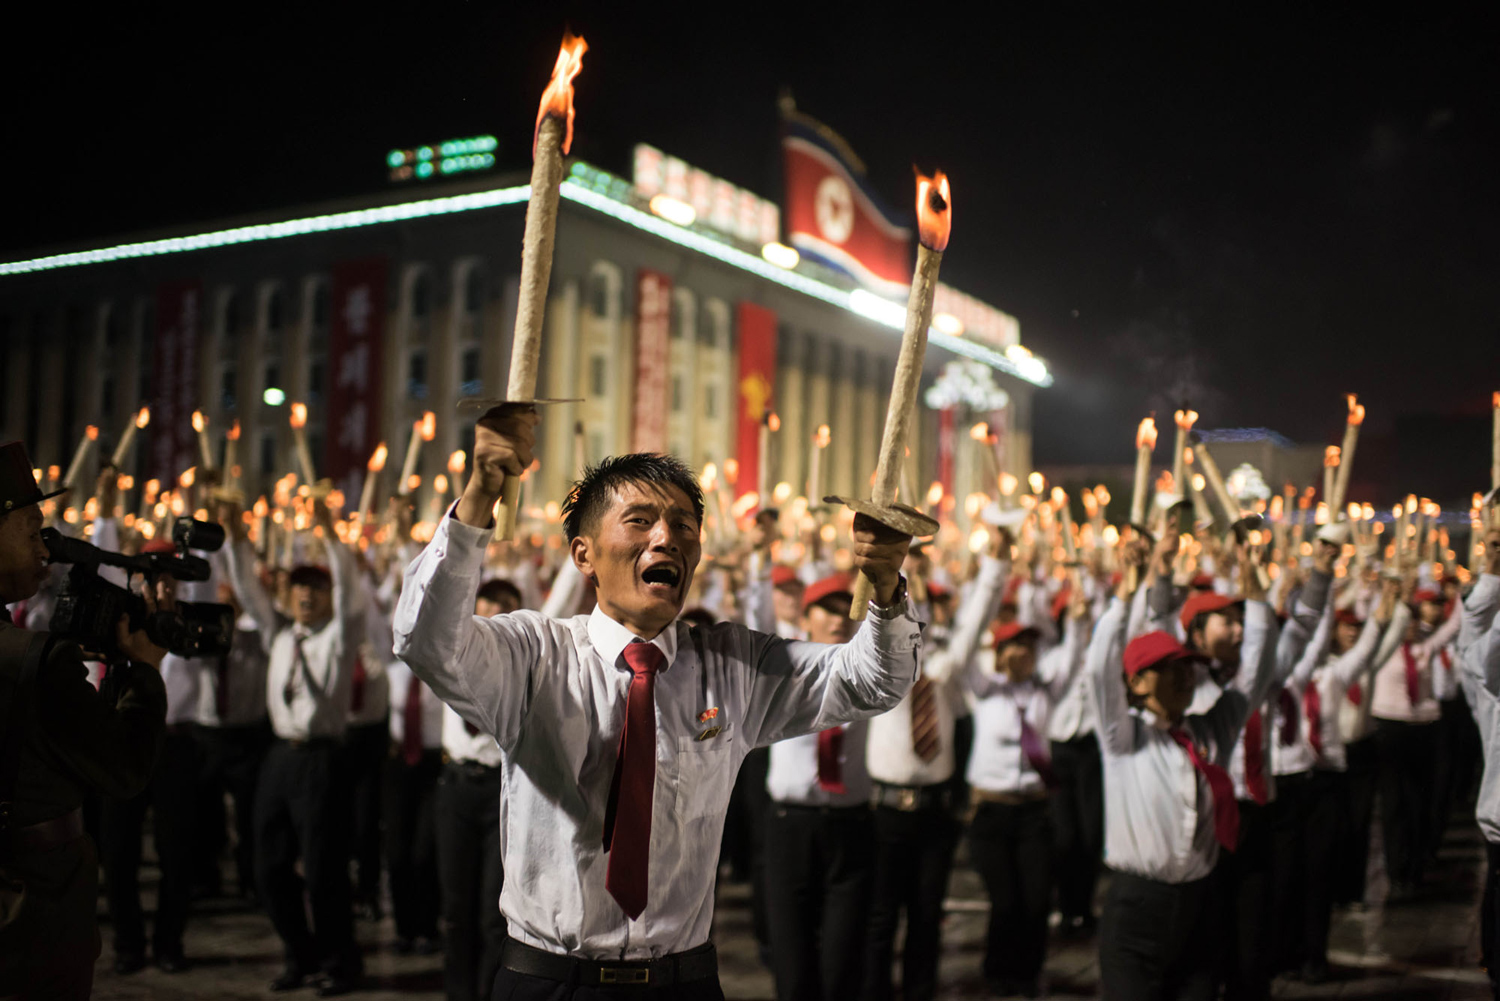 North Korea Marks 70 Years of Workers' Party Rule 23